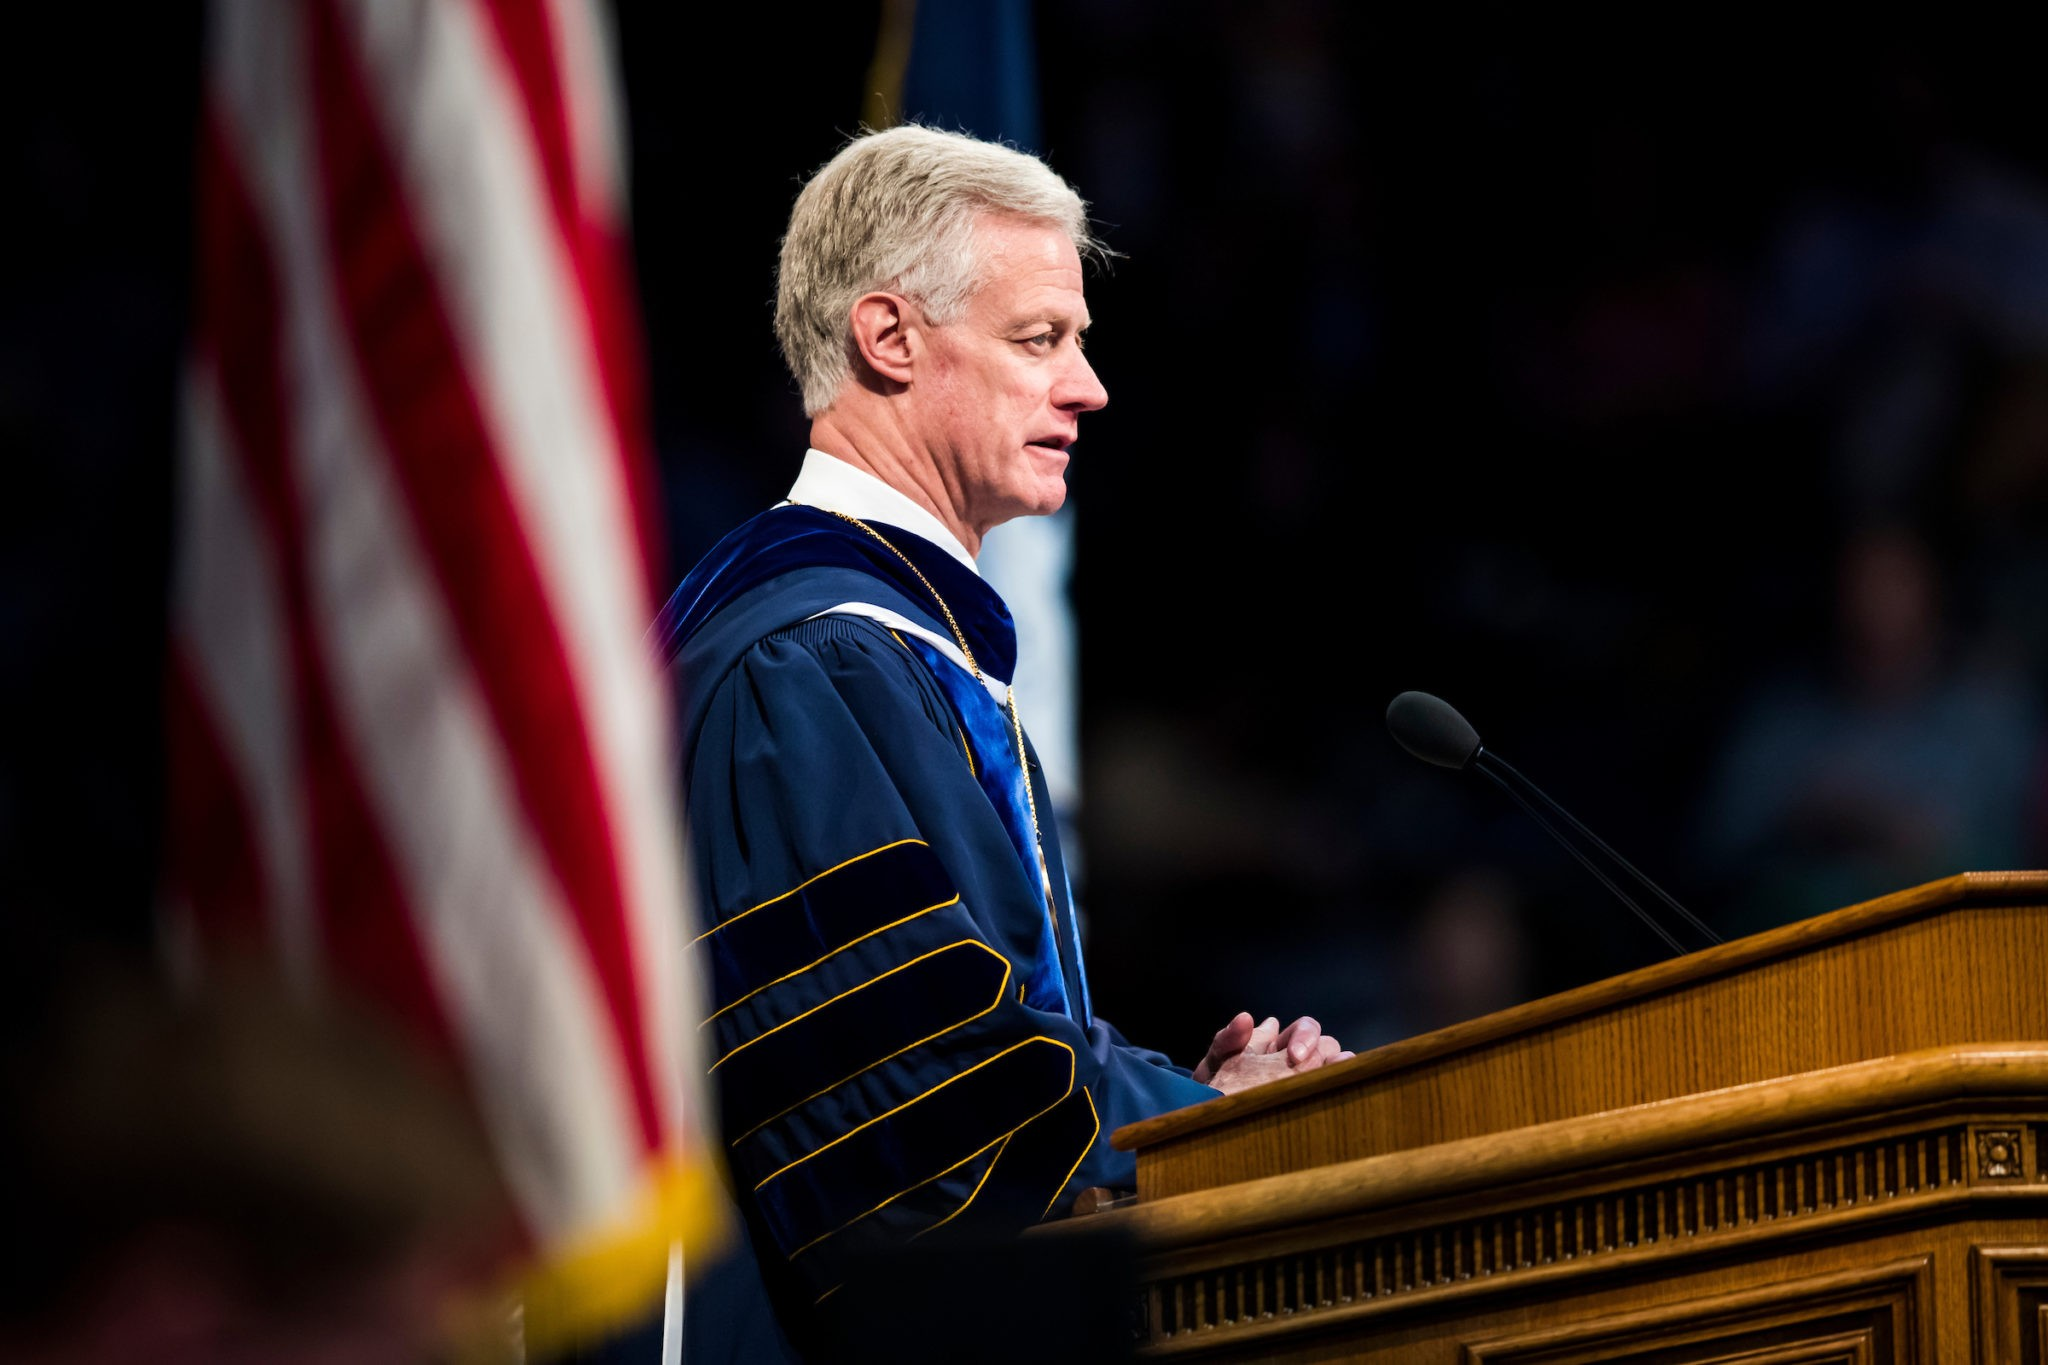 April 2021 commencement will be virtual